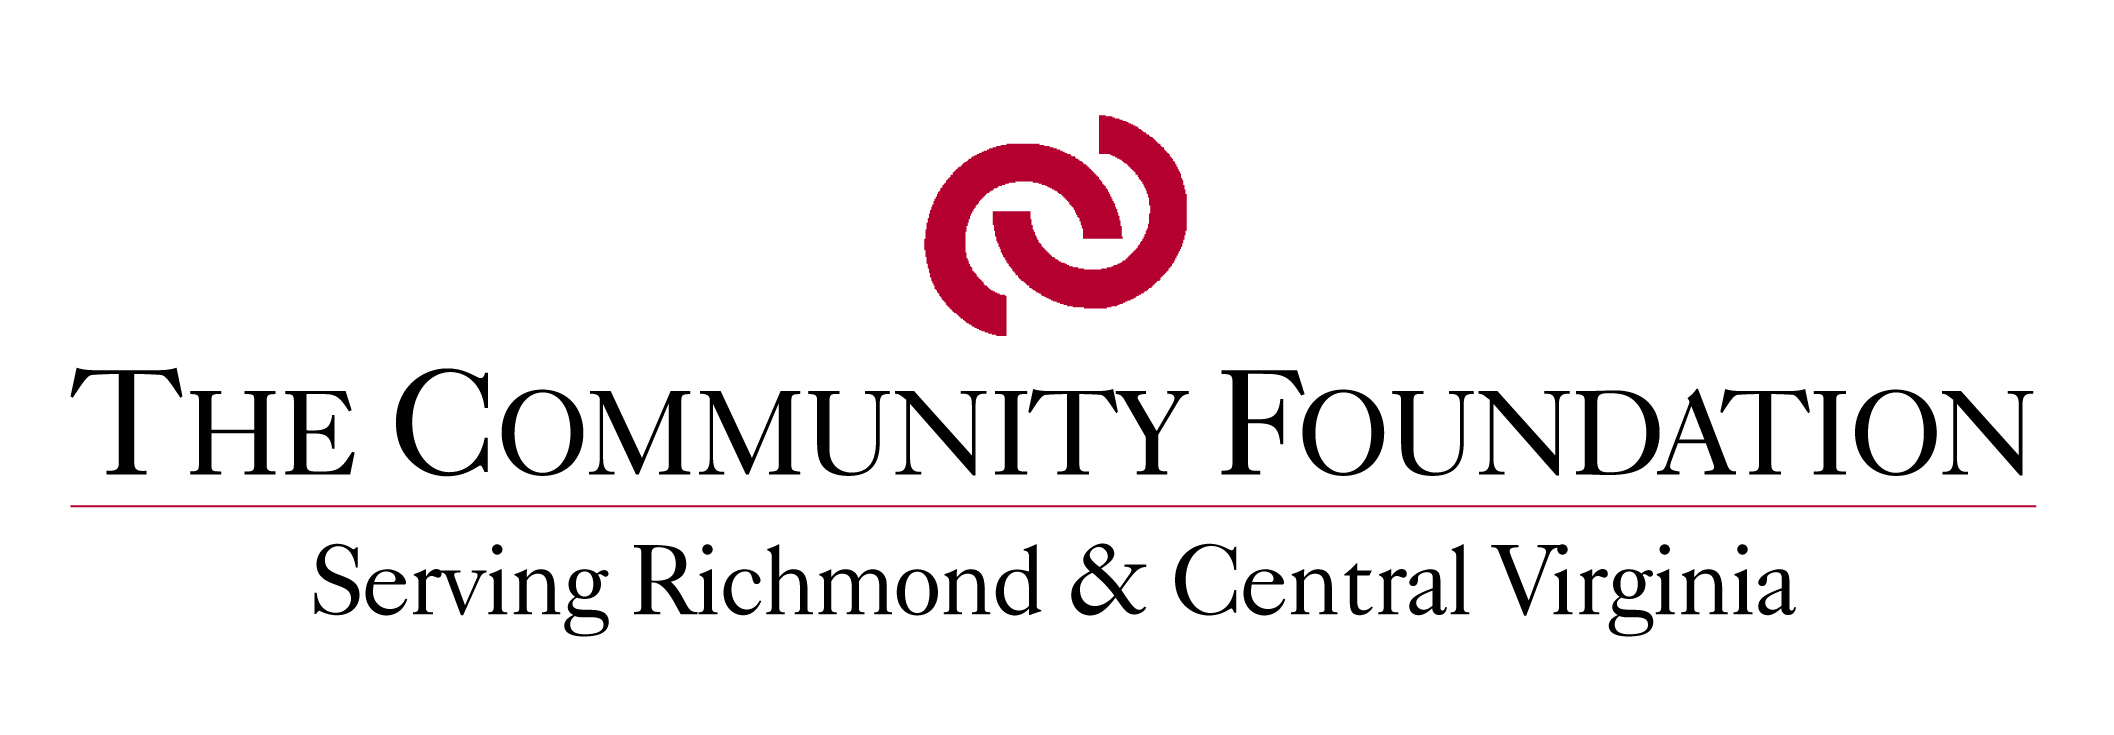 Image result for the community foundation logo